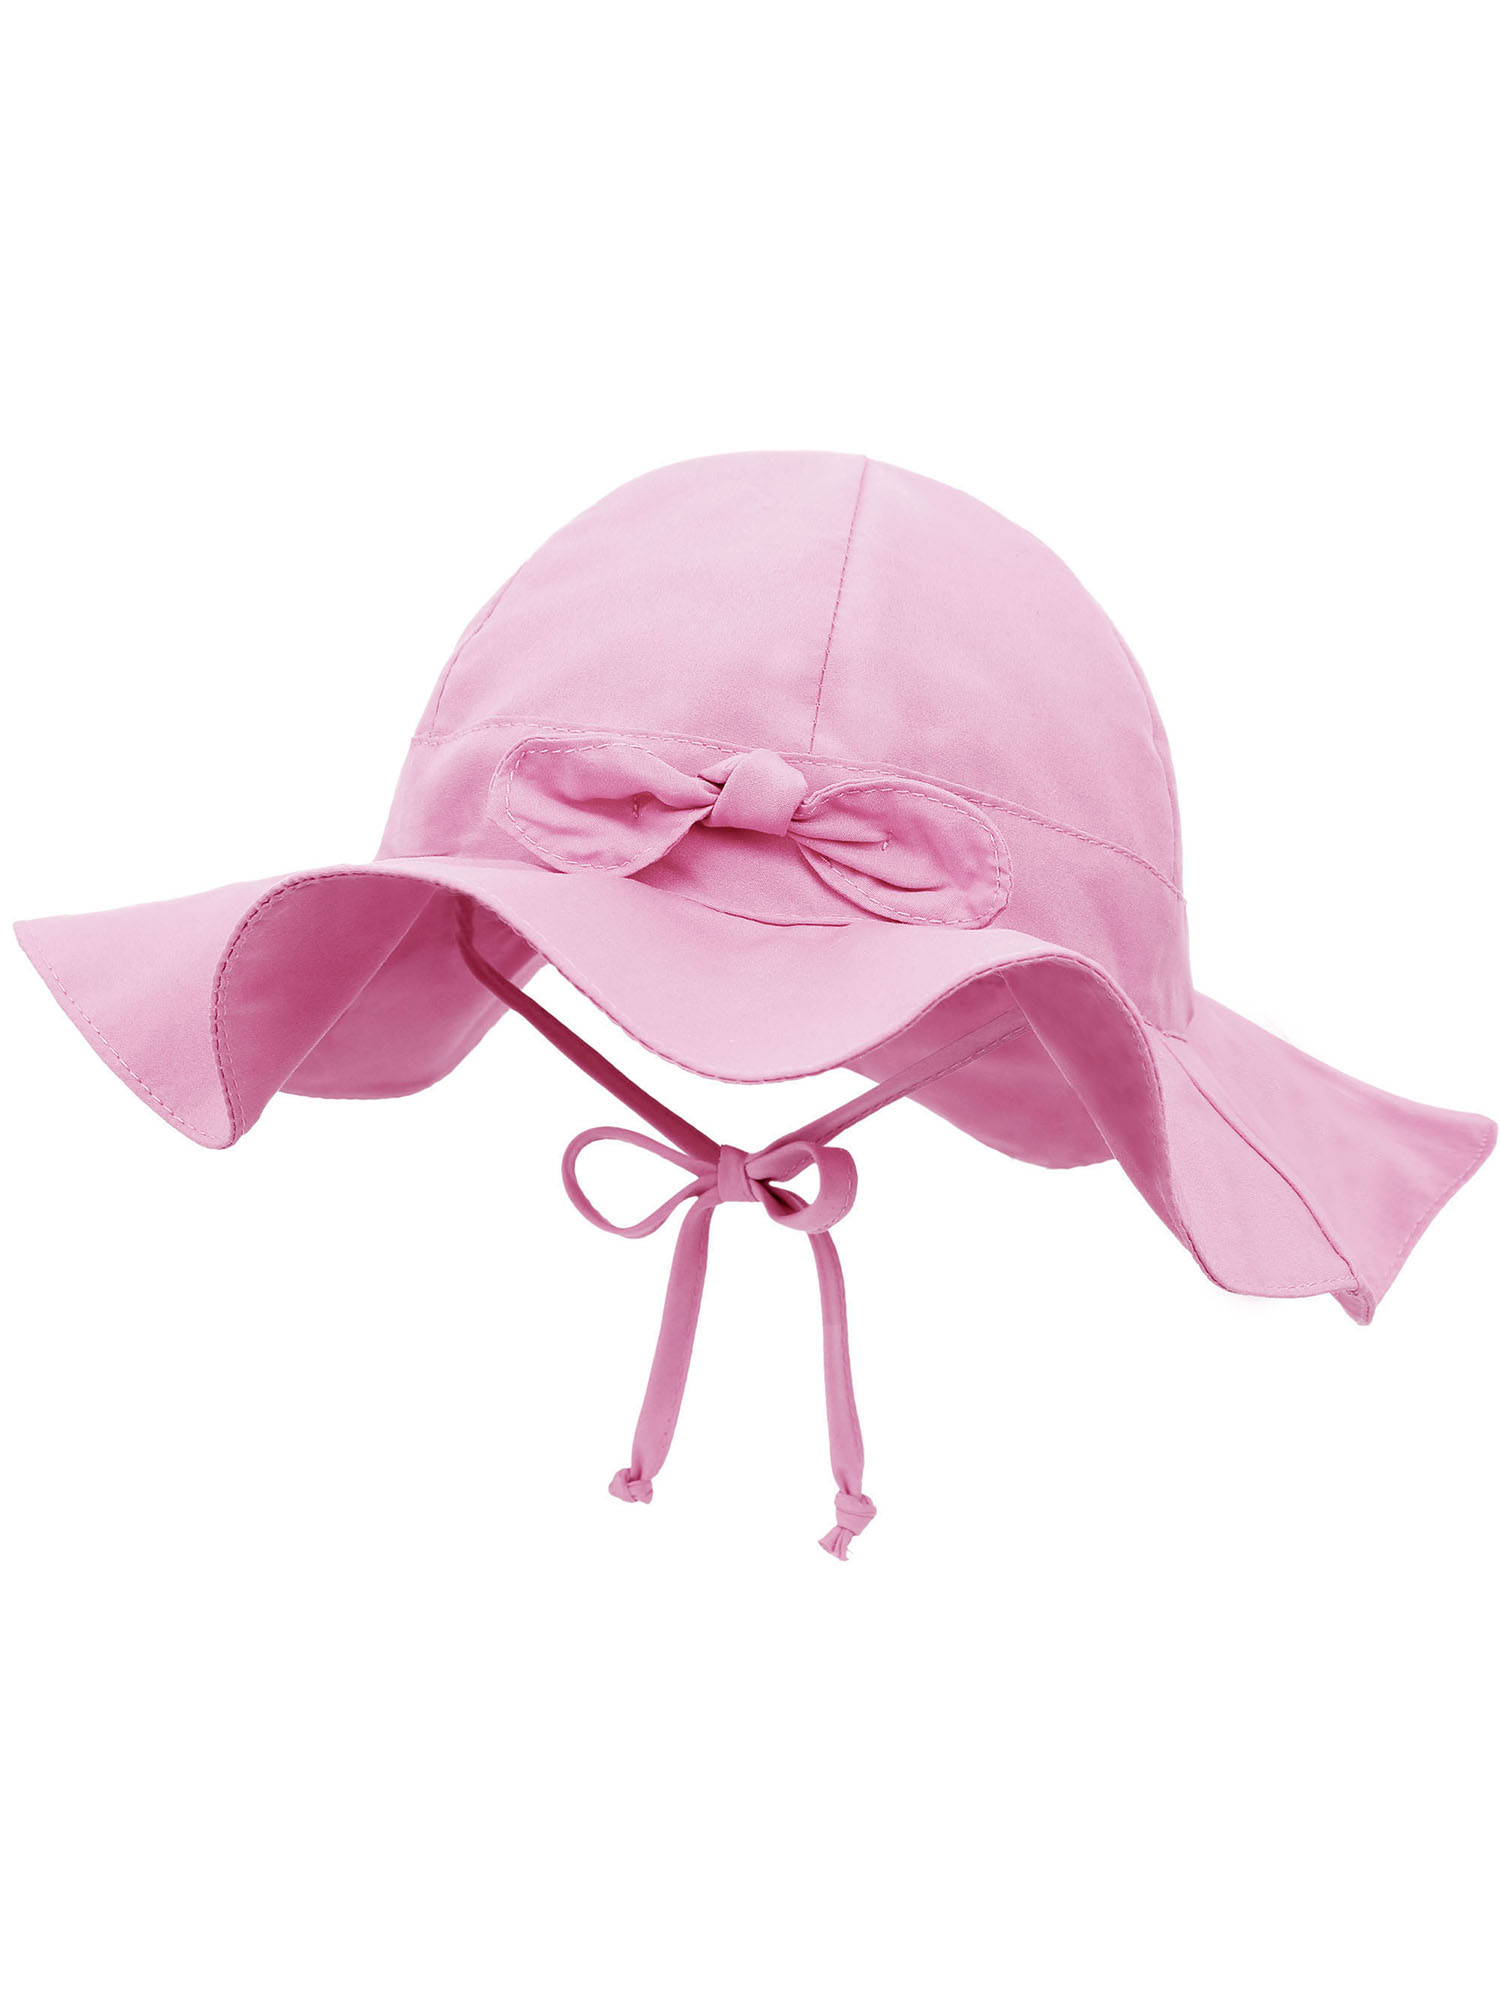 Baby Sun Hat Pink Small with Ducks  Baby Summer Hat